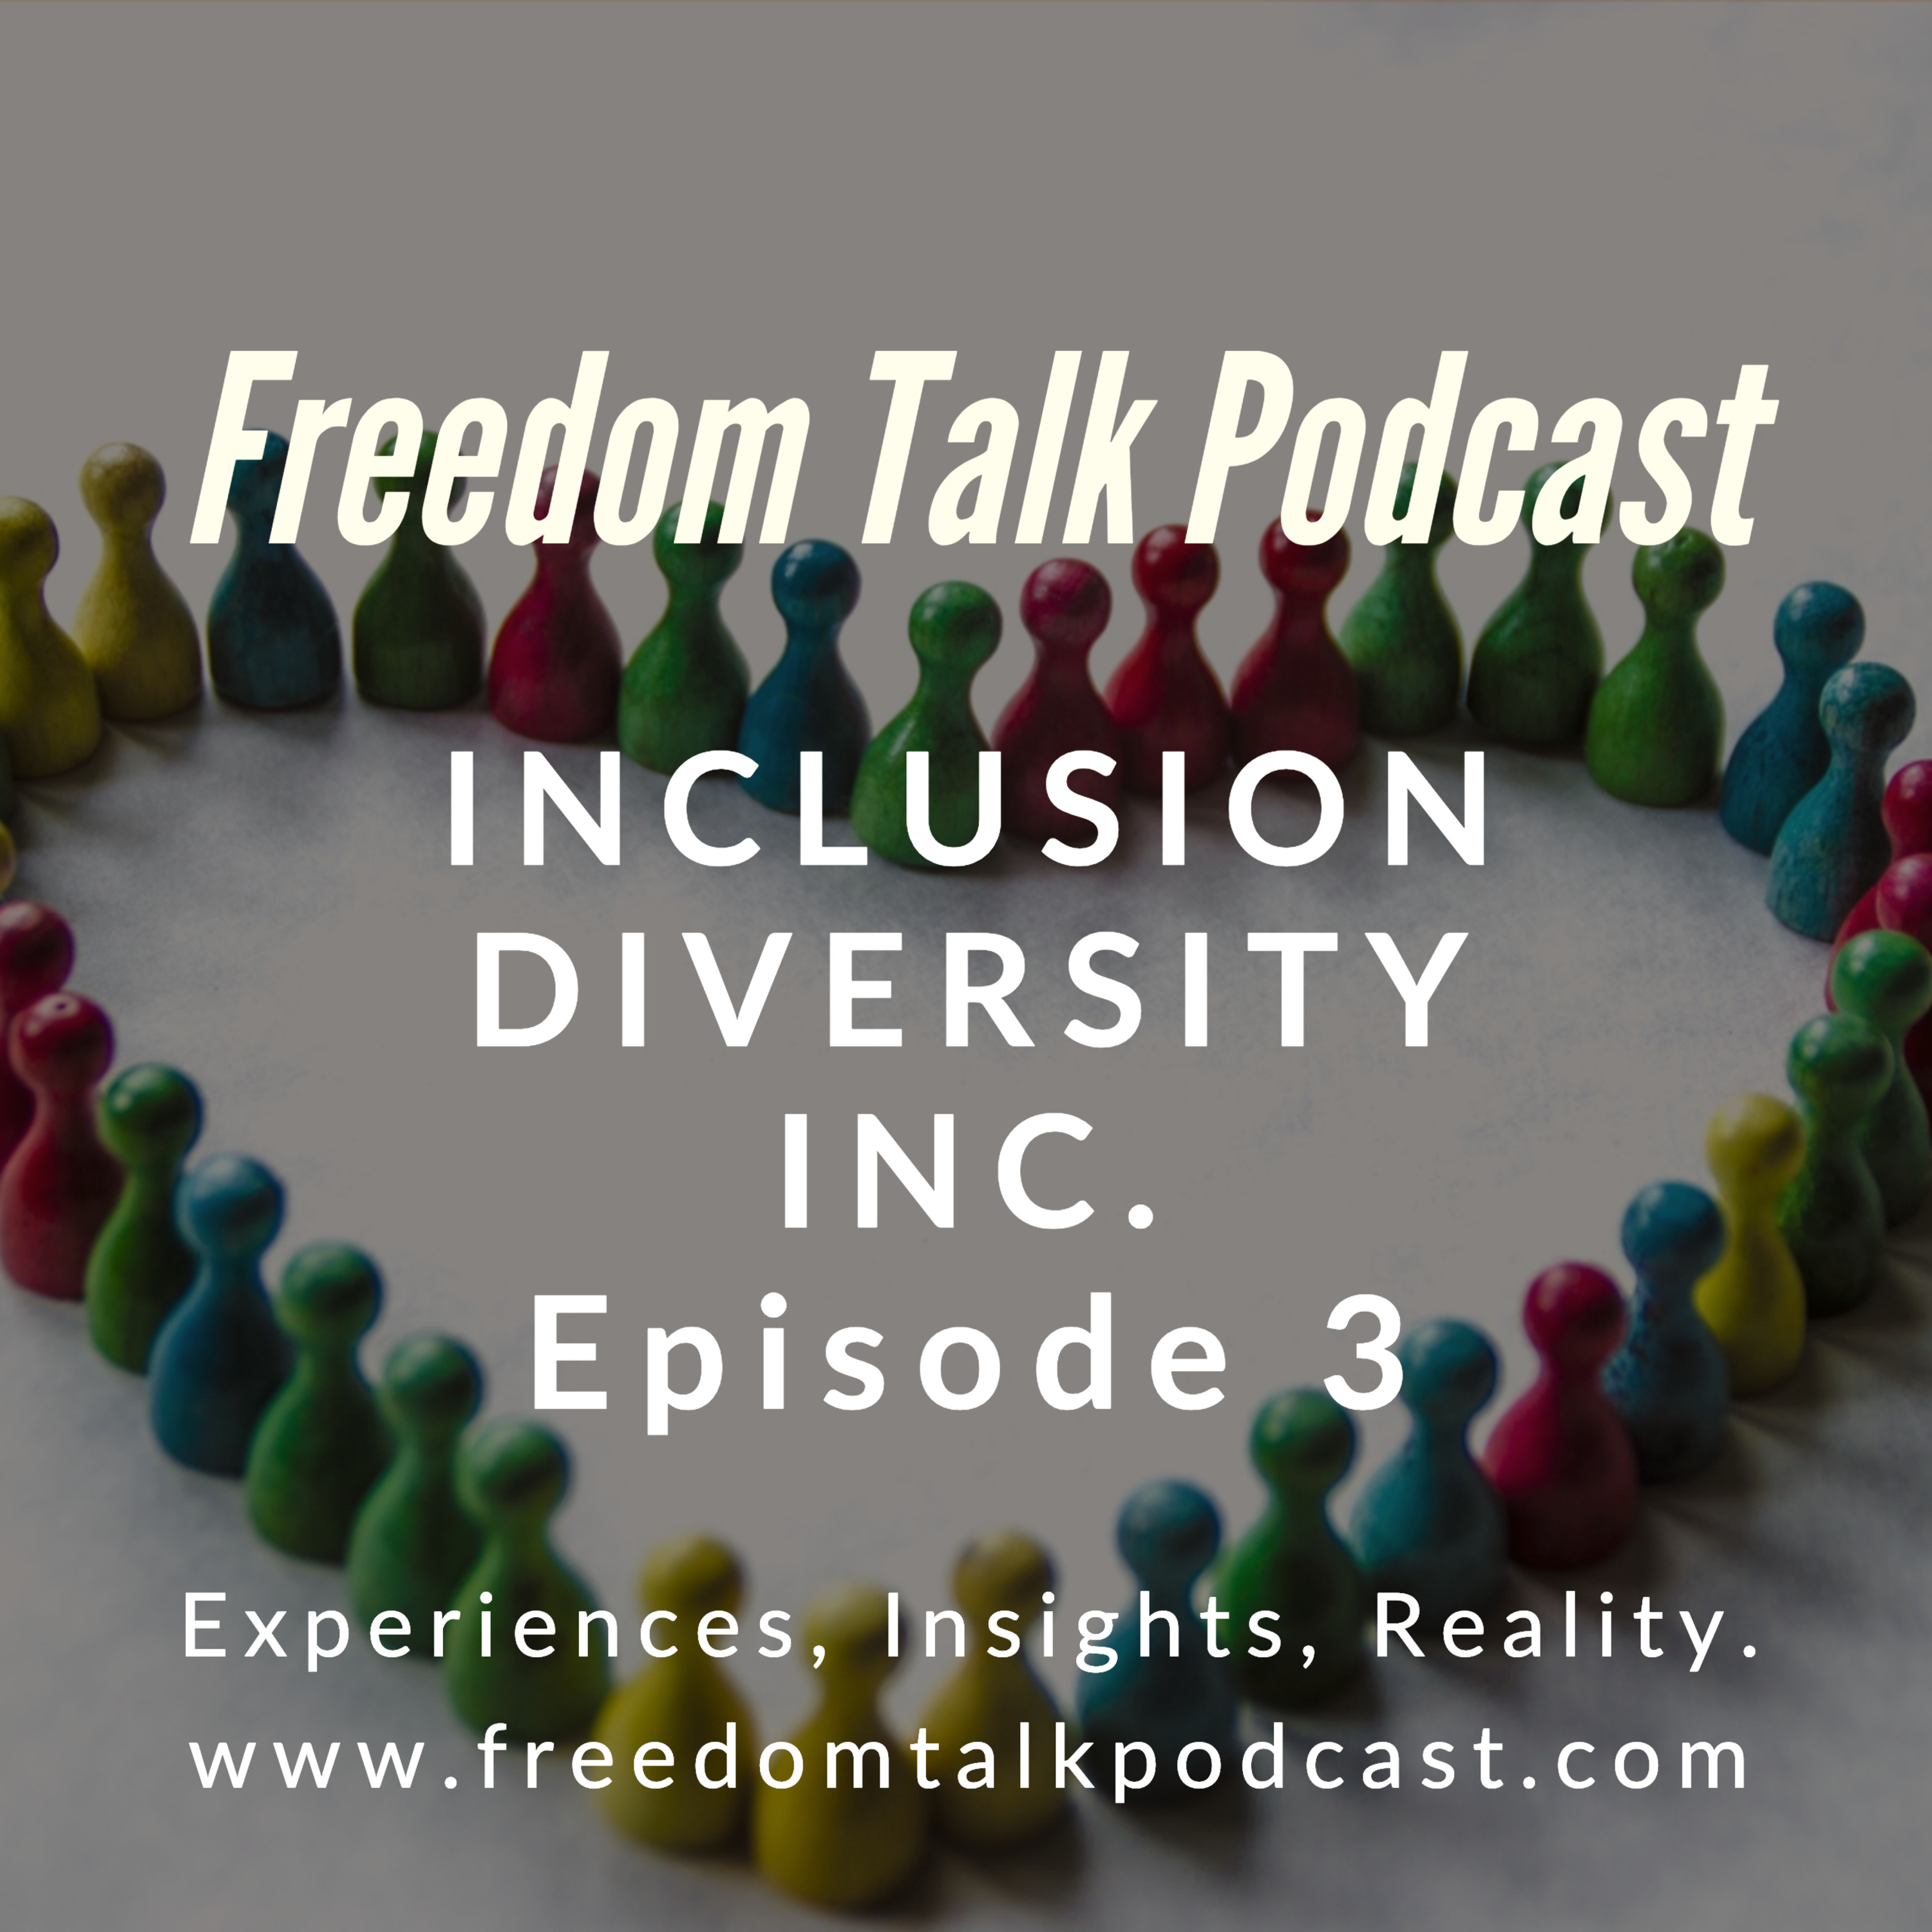 Freedom Talk Episode 3